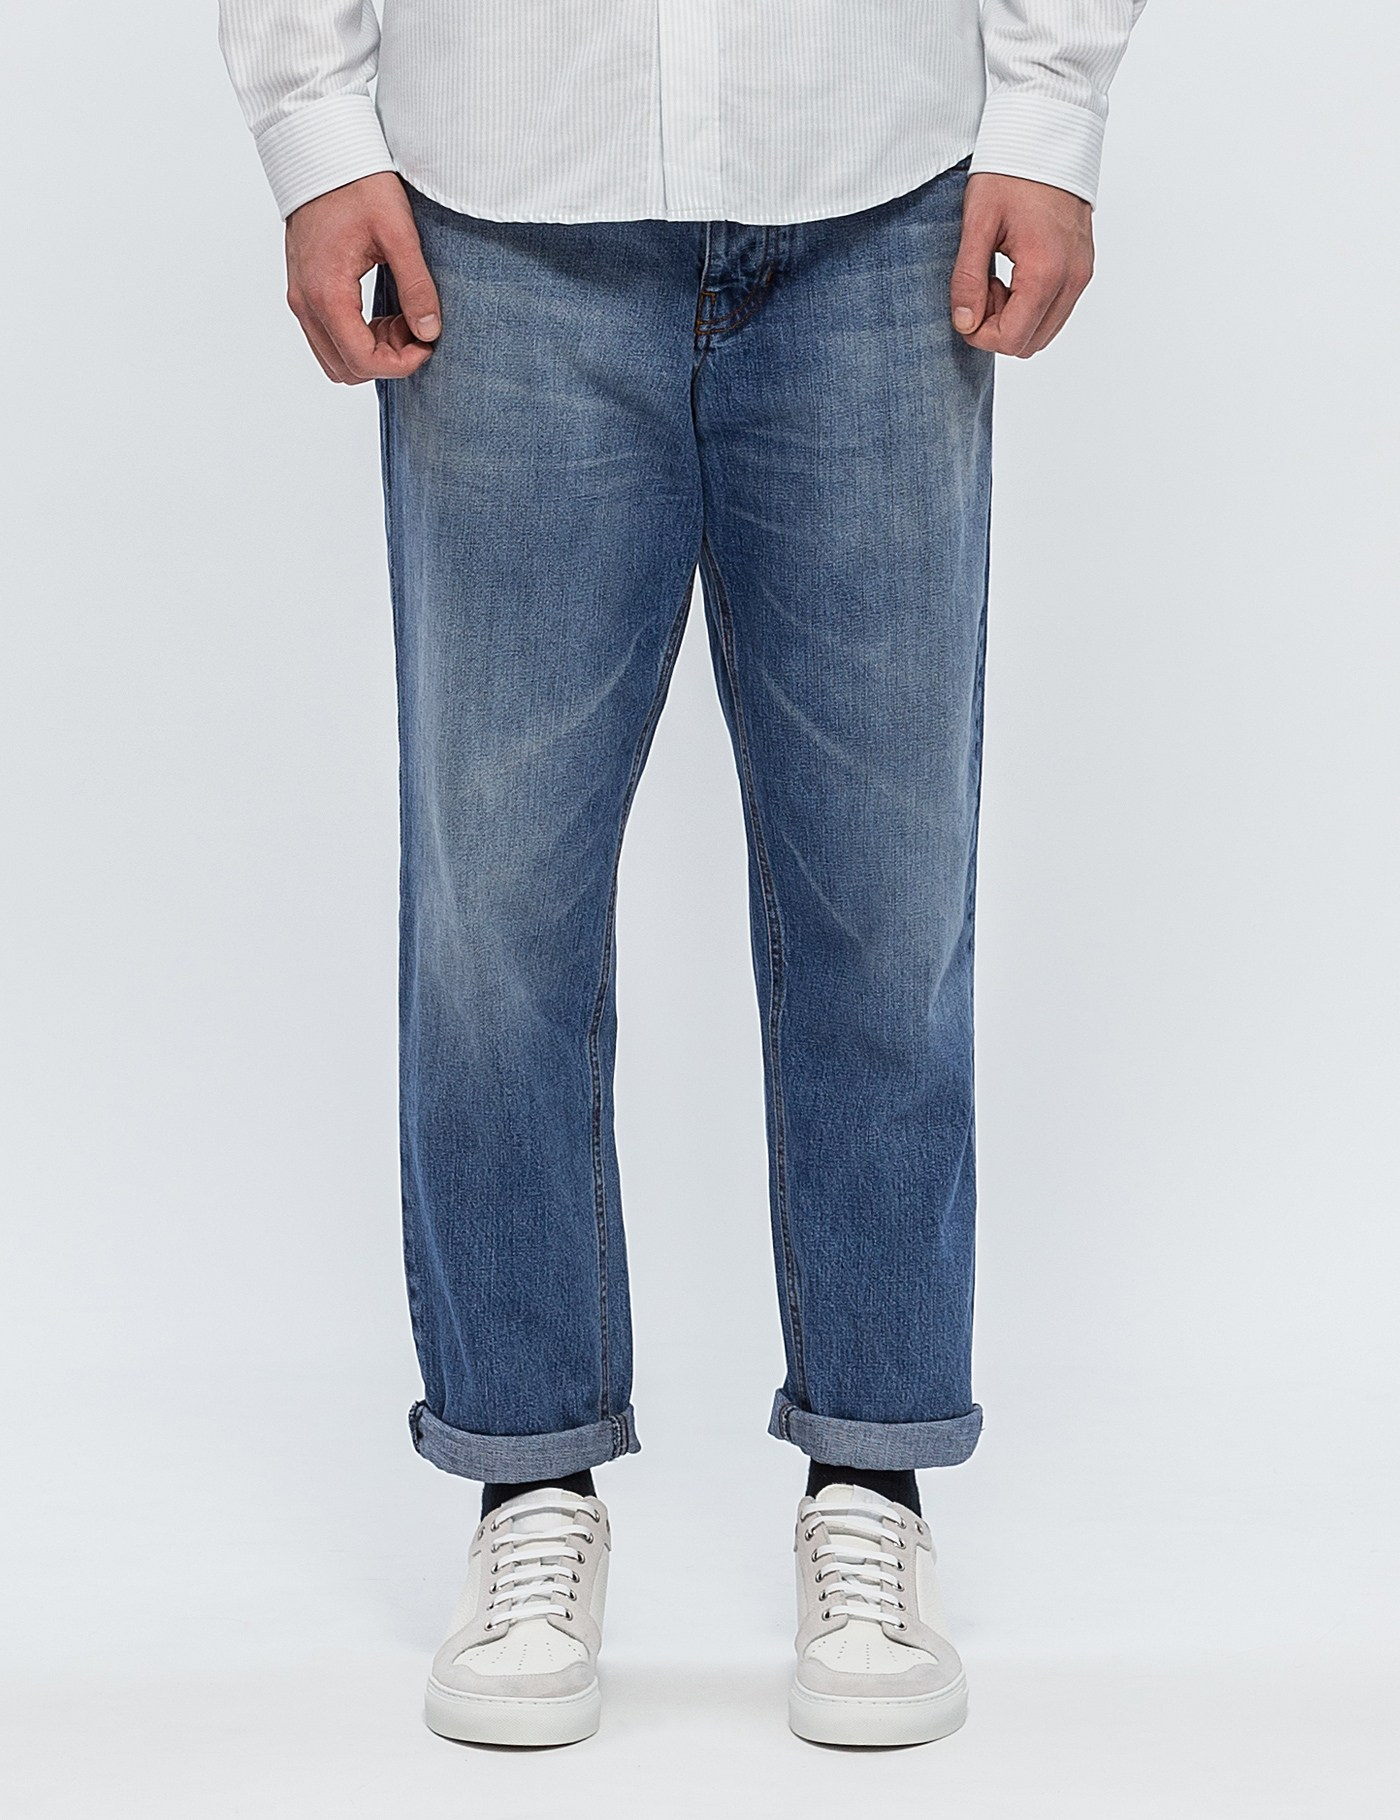 cc96bf50524 Buy Original ami Carrot Fit 5 Pockets Jeans at Indonesia